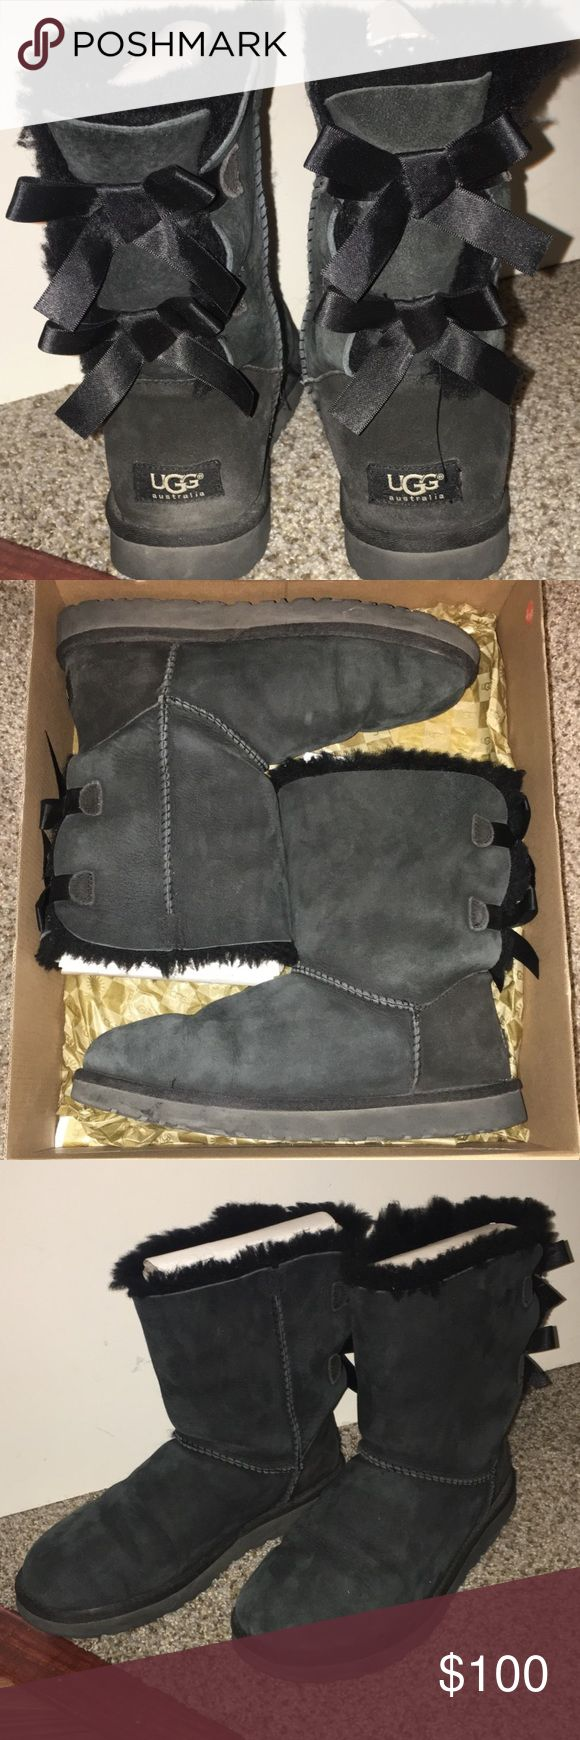 Black UGG Bailey Bow Boots VERY GOOD CONDITION, have been stored in box w/ shoe forms. Wore them a couple years ago, but haven't taken them out of the box since. Open to offers. UGG Shoes Winter & Rain Boots